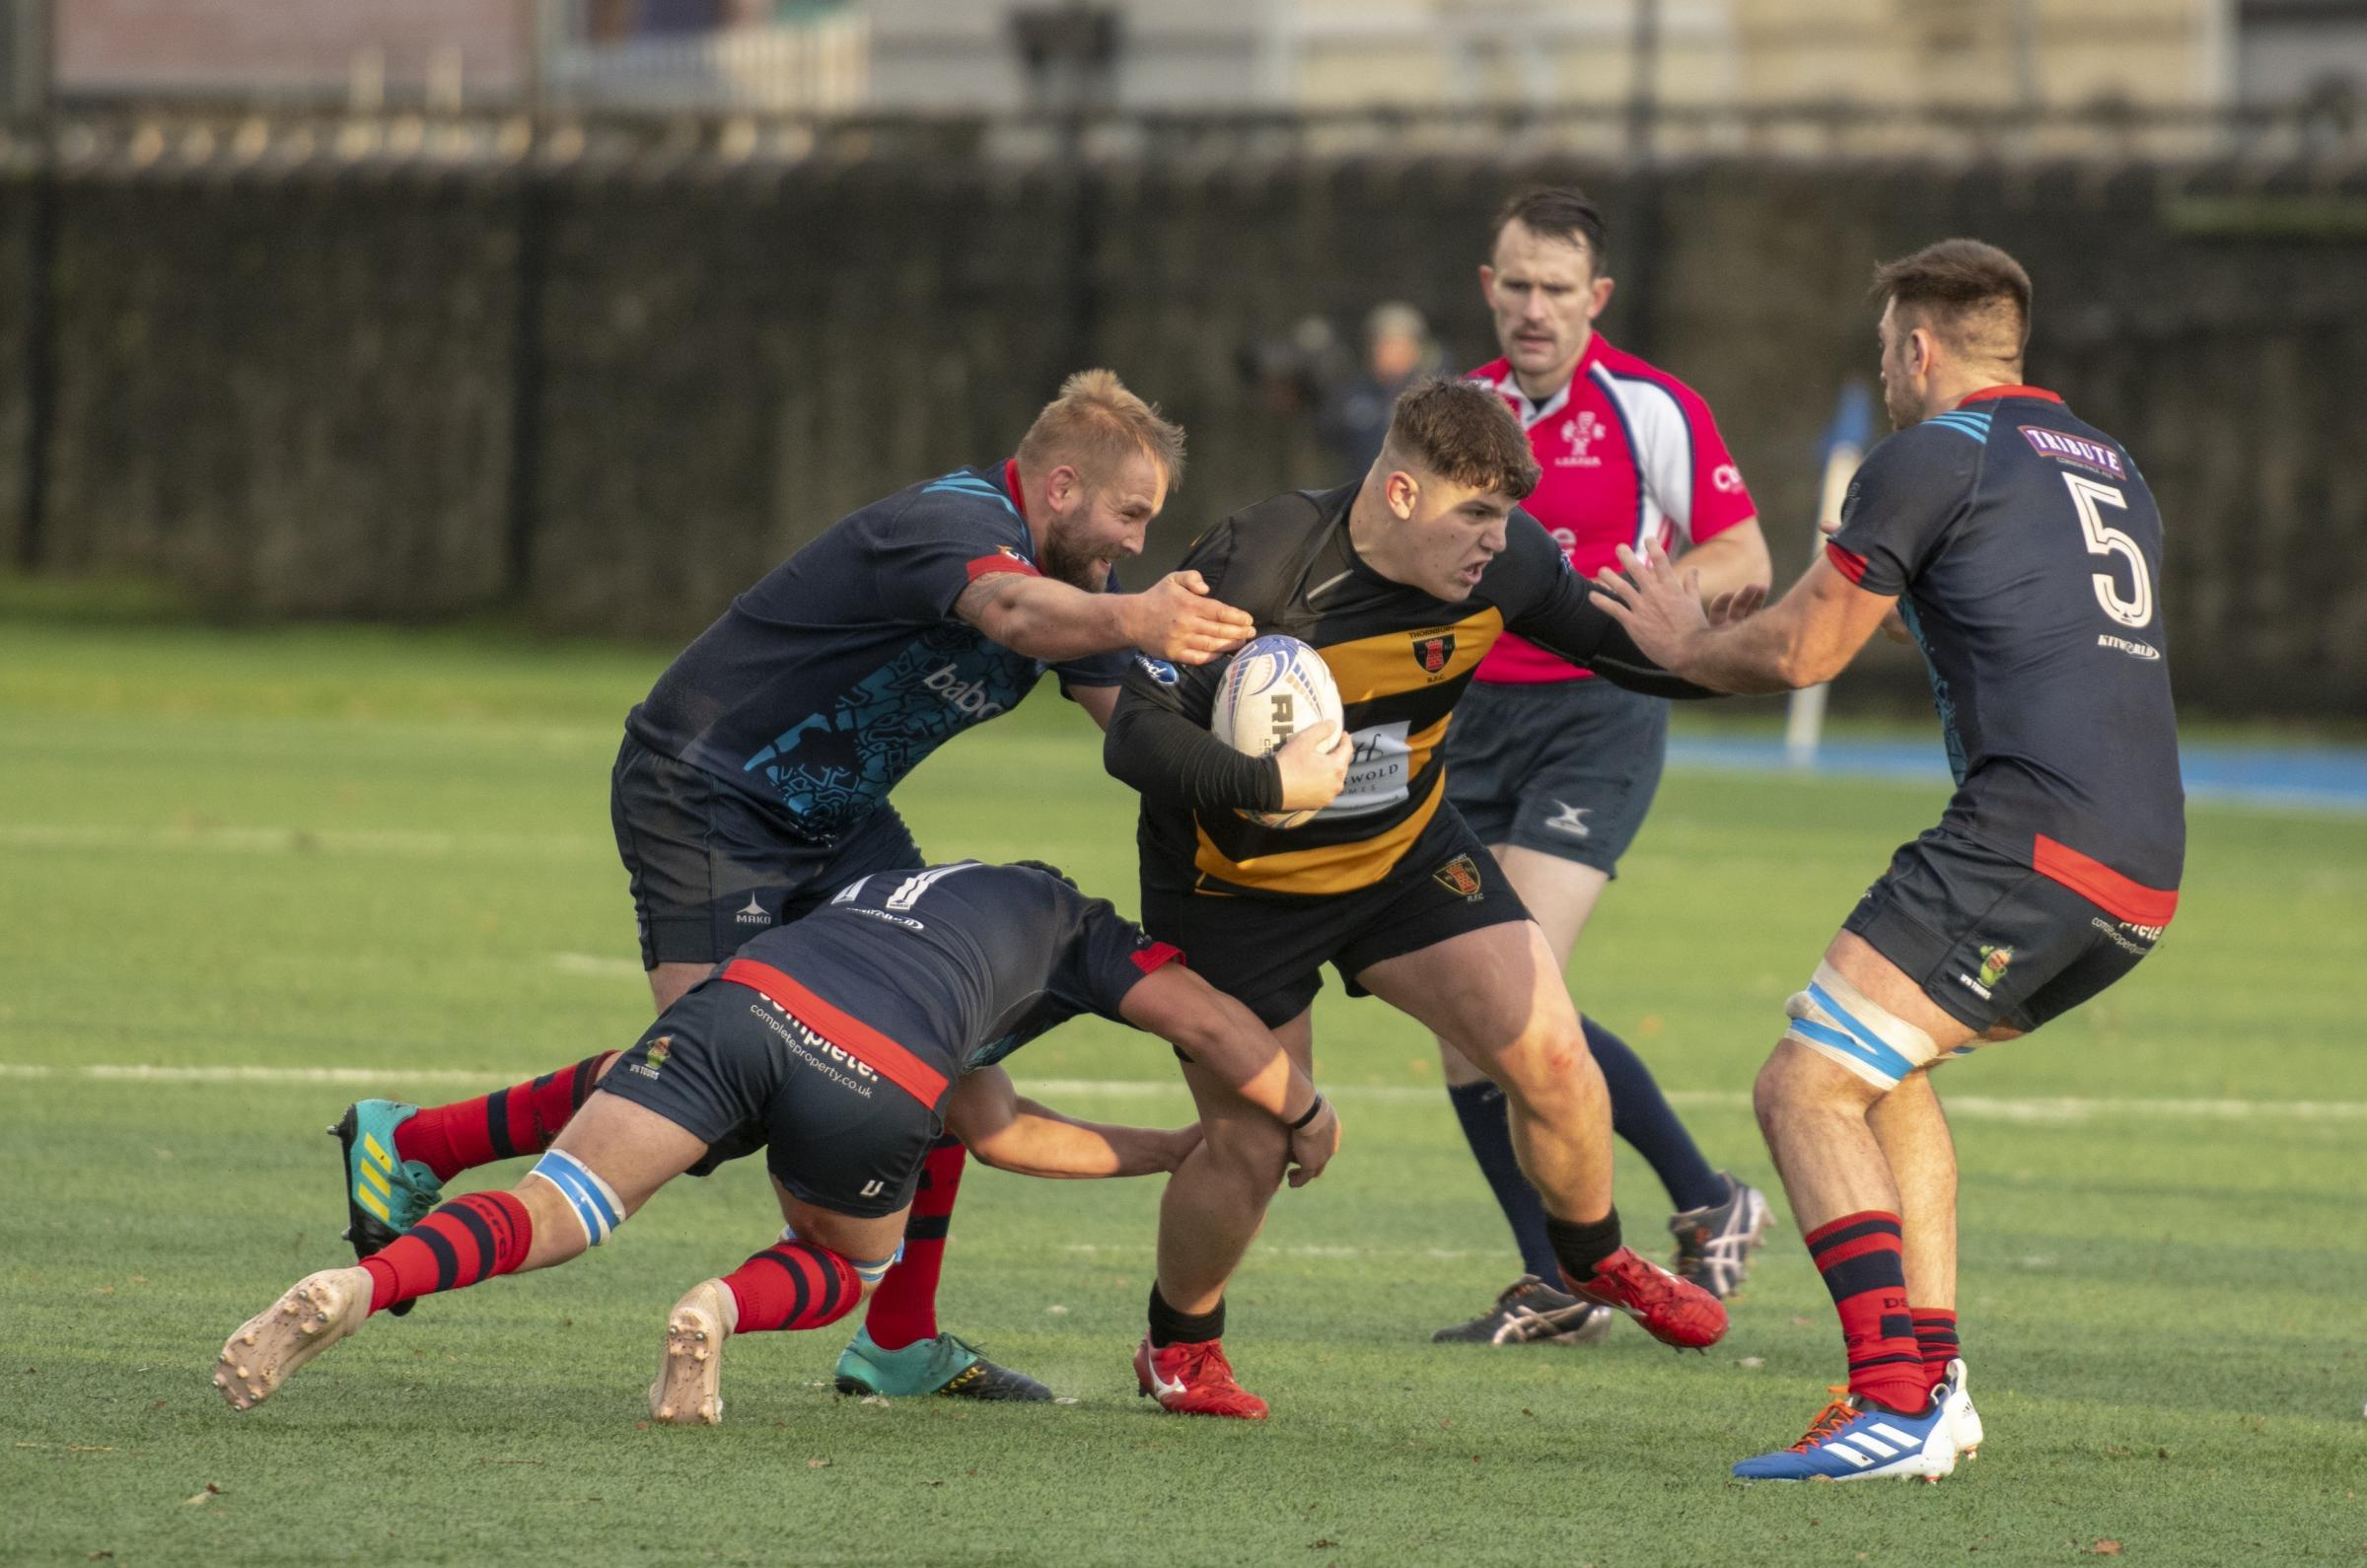 RUGBY: Thornbury lose top of the table clash - Gazette Series